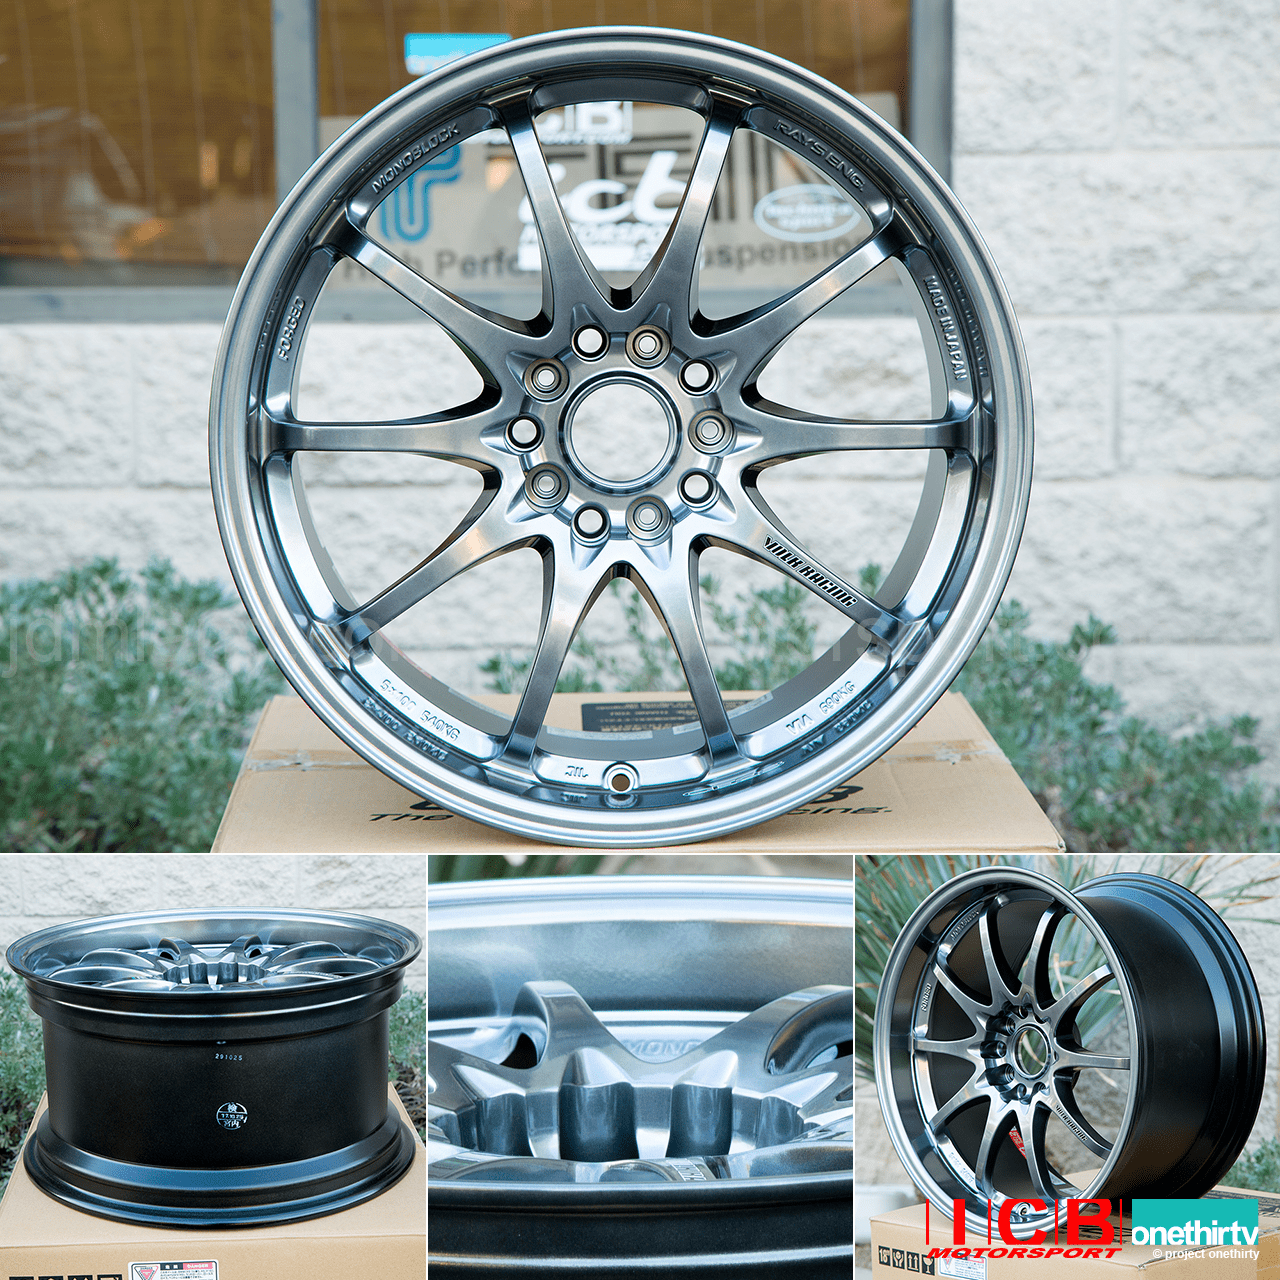 Rays Volk Racing CE28N Bronze Mag Blue Hyper Gold Wheels 18X9.5 +33 Offset 5X120 Concave Face Civic FK8 CTR